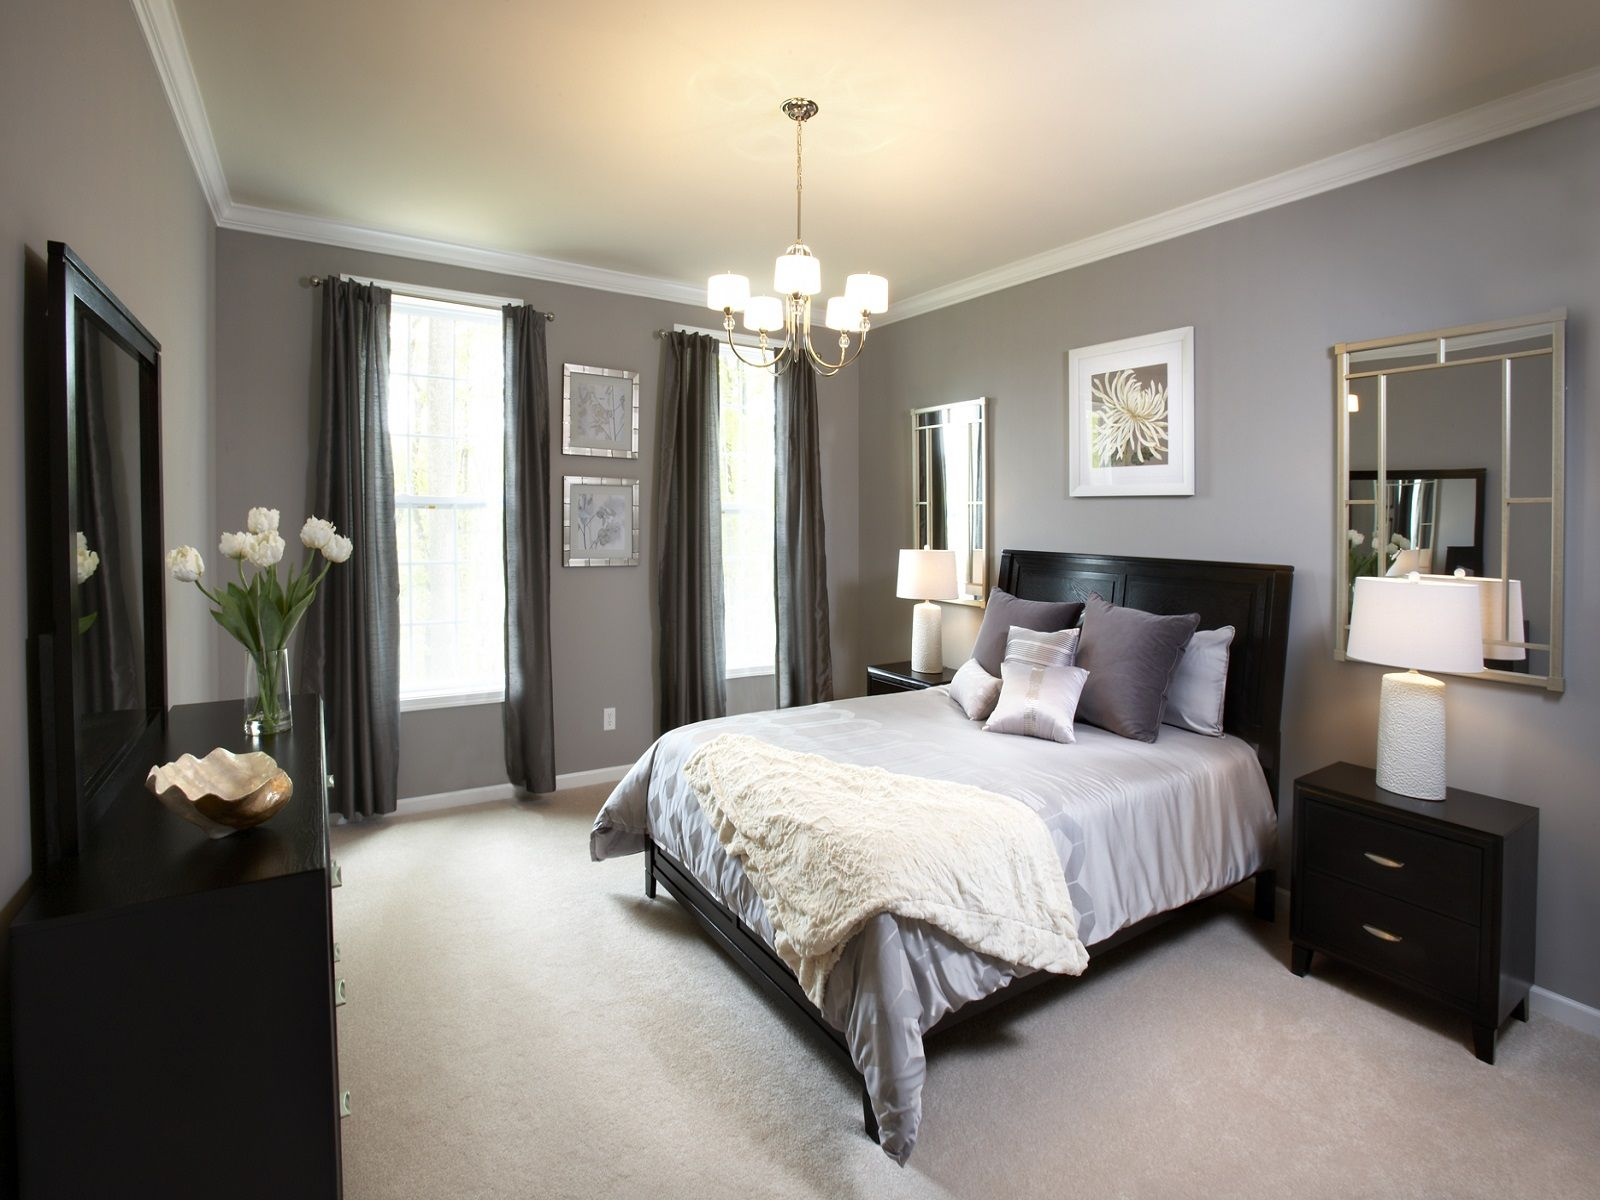 Living Room Gray Room Ideas 1000 ideas about grey bedroom decor on pinterest gray bedrooms and bedrooms